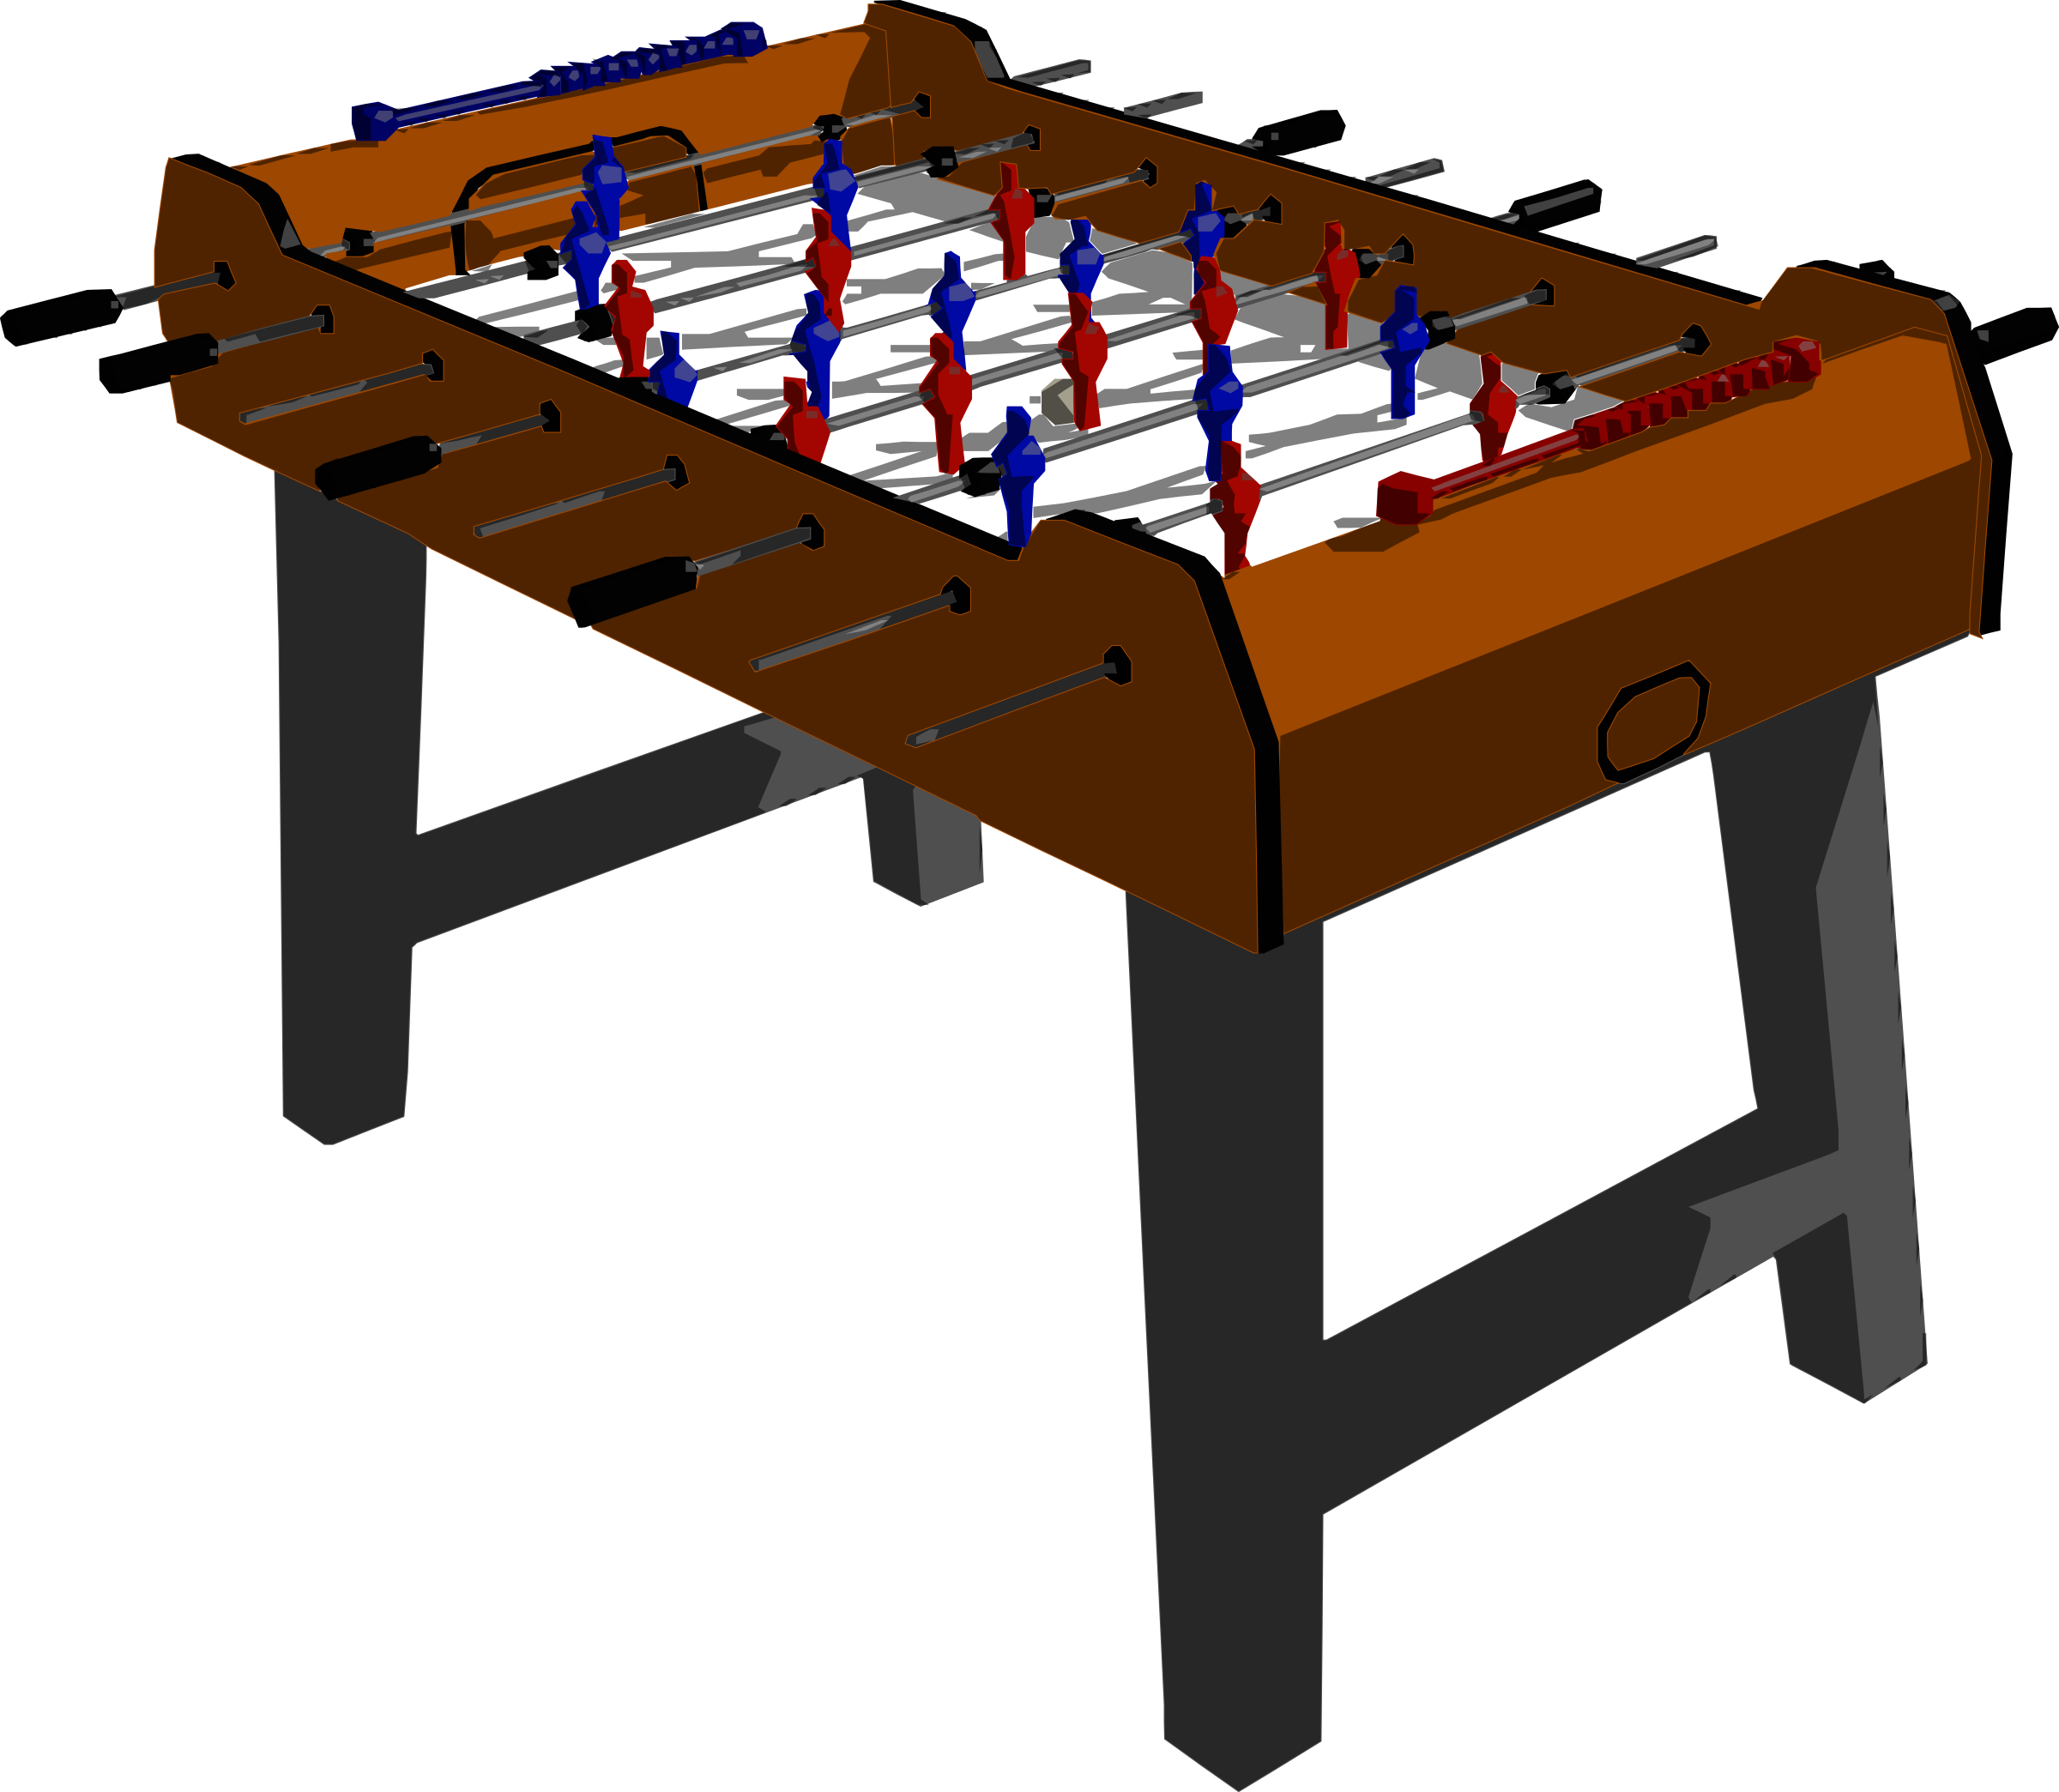 Game clipart table game. Foosball clip art ping